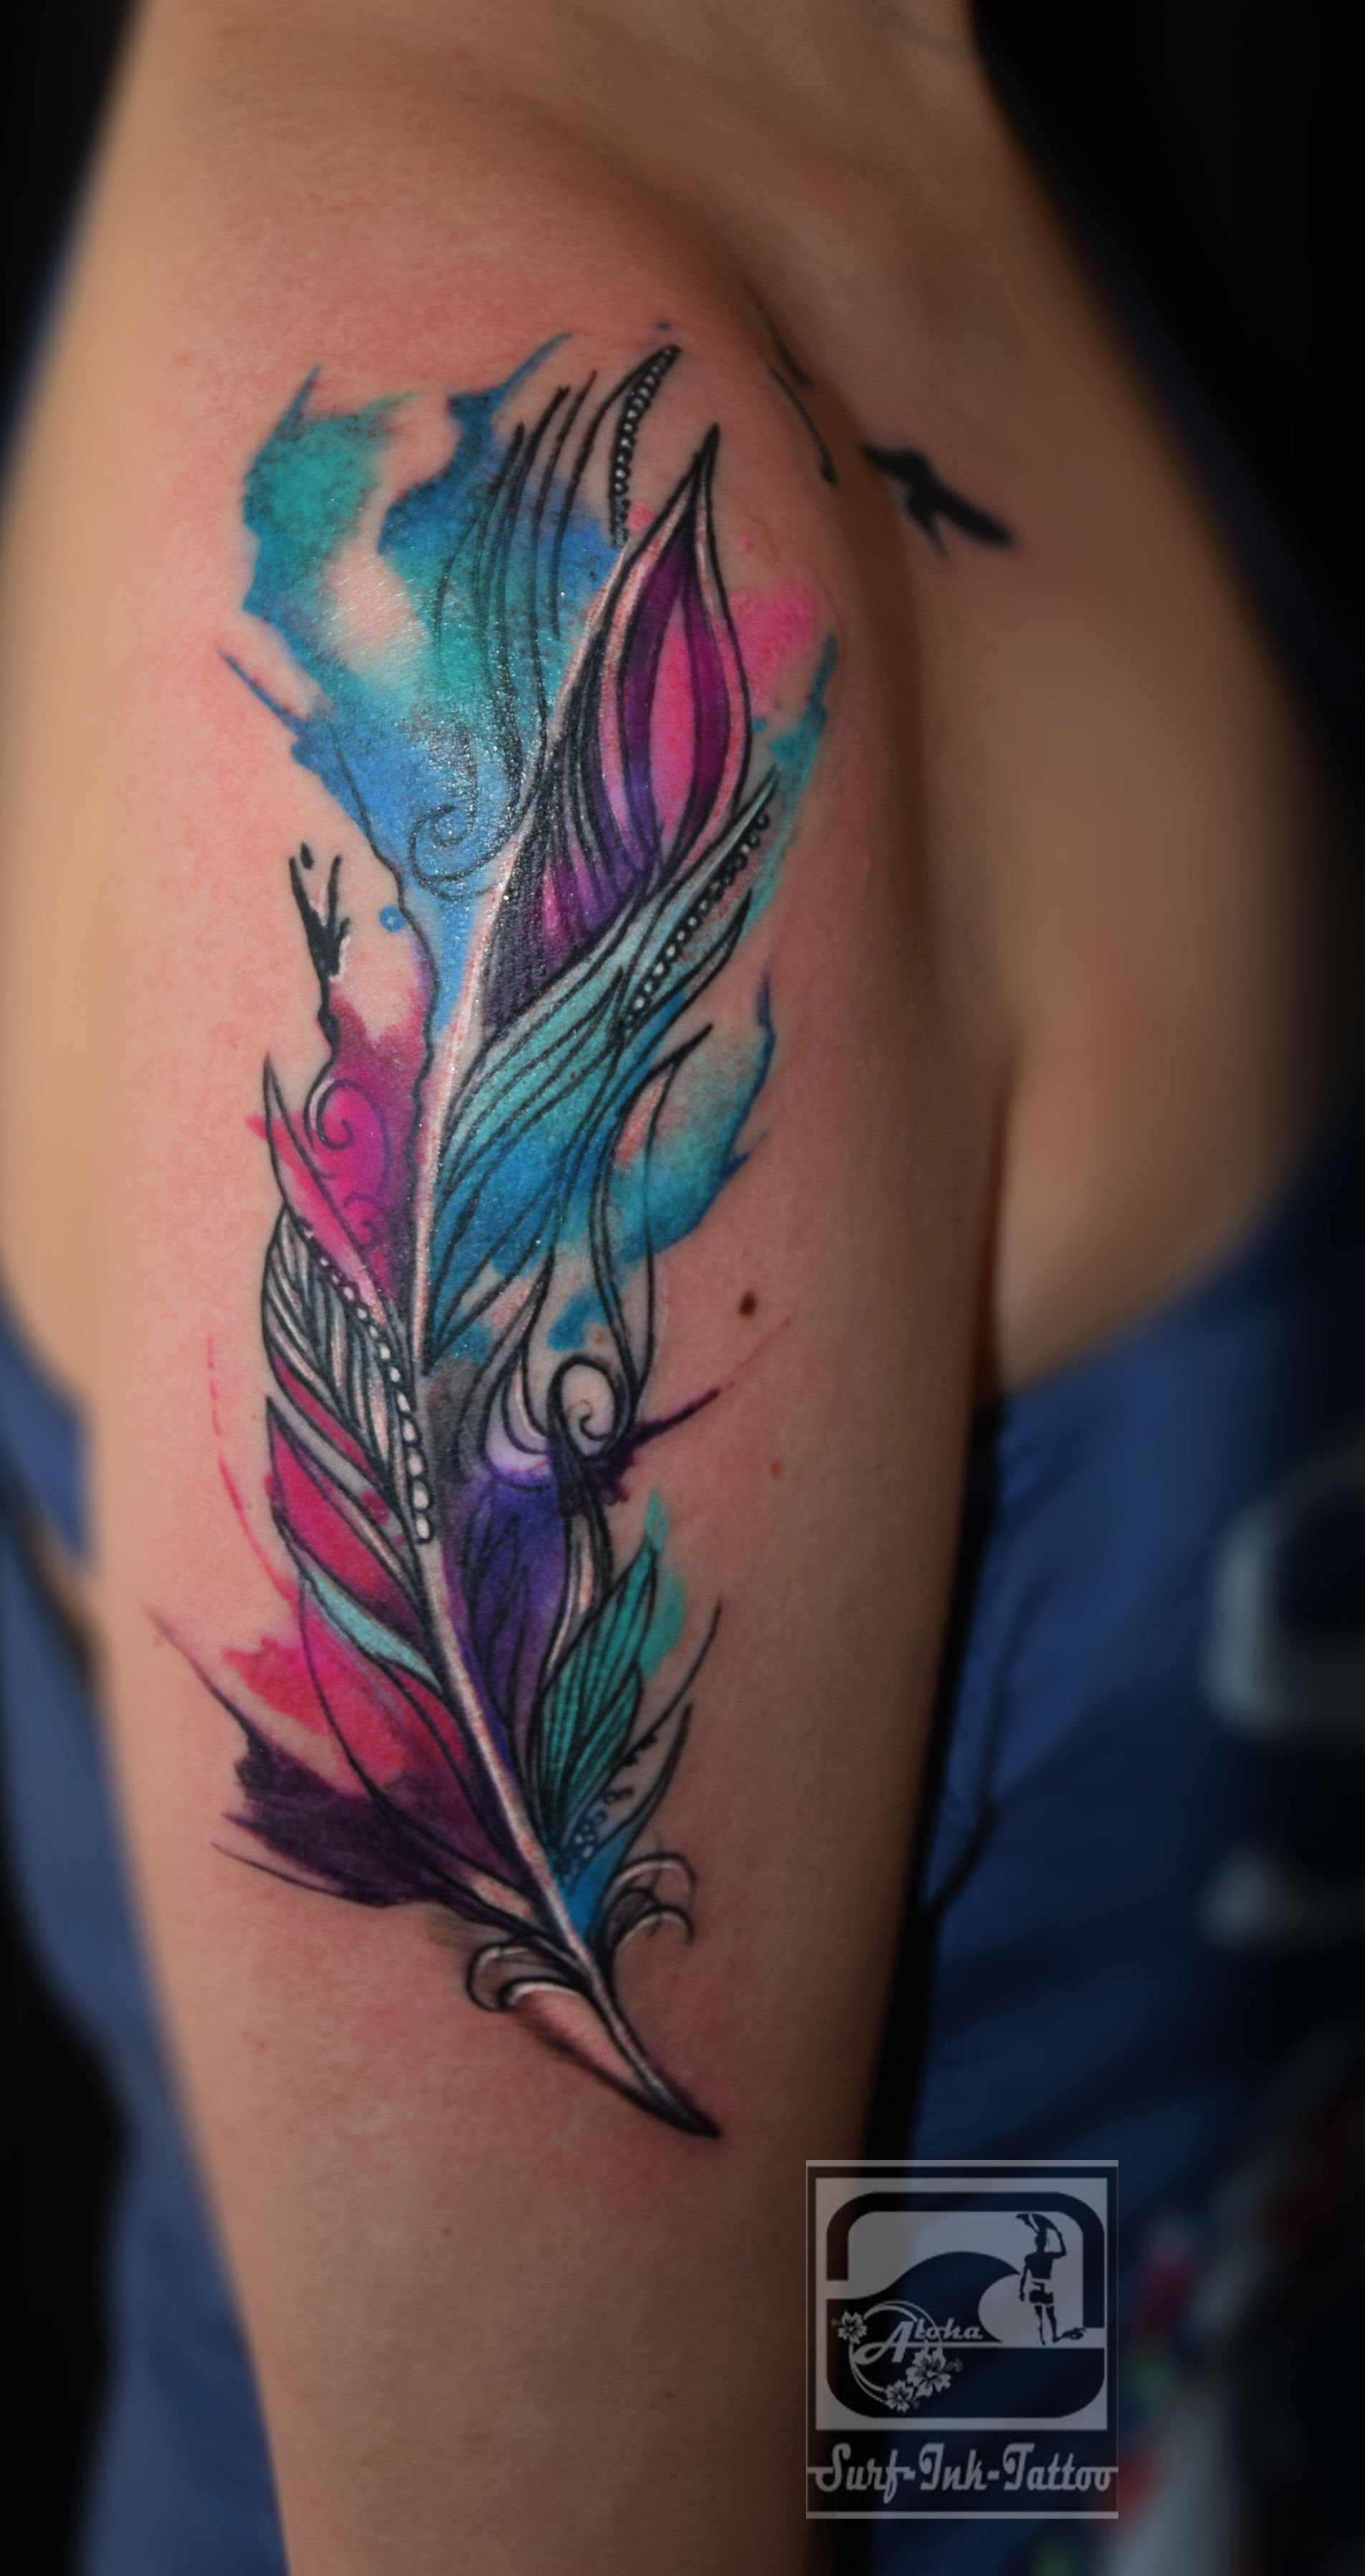 Faszinierend Feder Tattoo Unterarm Das Beste Von Watercolour Feder, Watercolour Tattoo,watercolor Tattoo, Aquarell Tattoo,